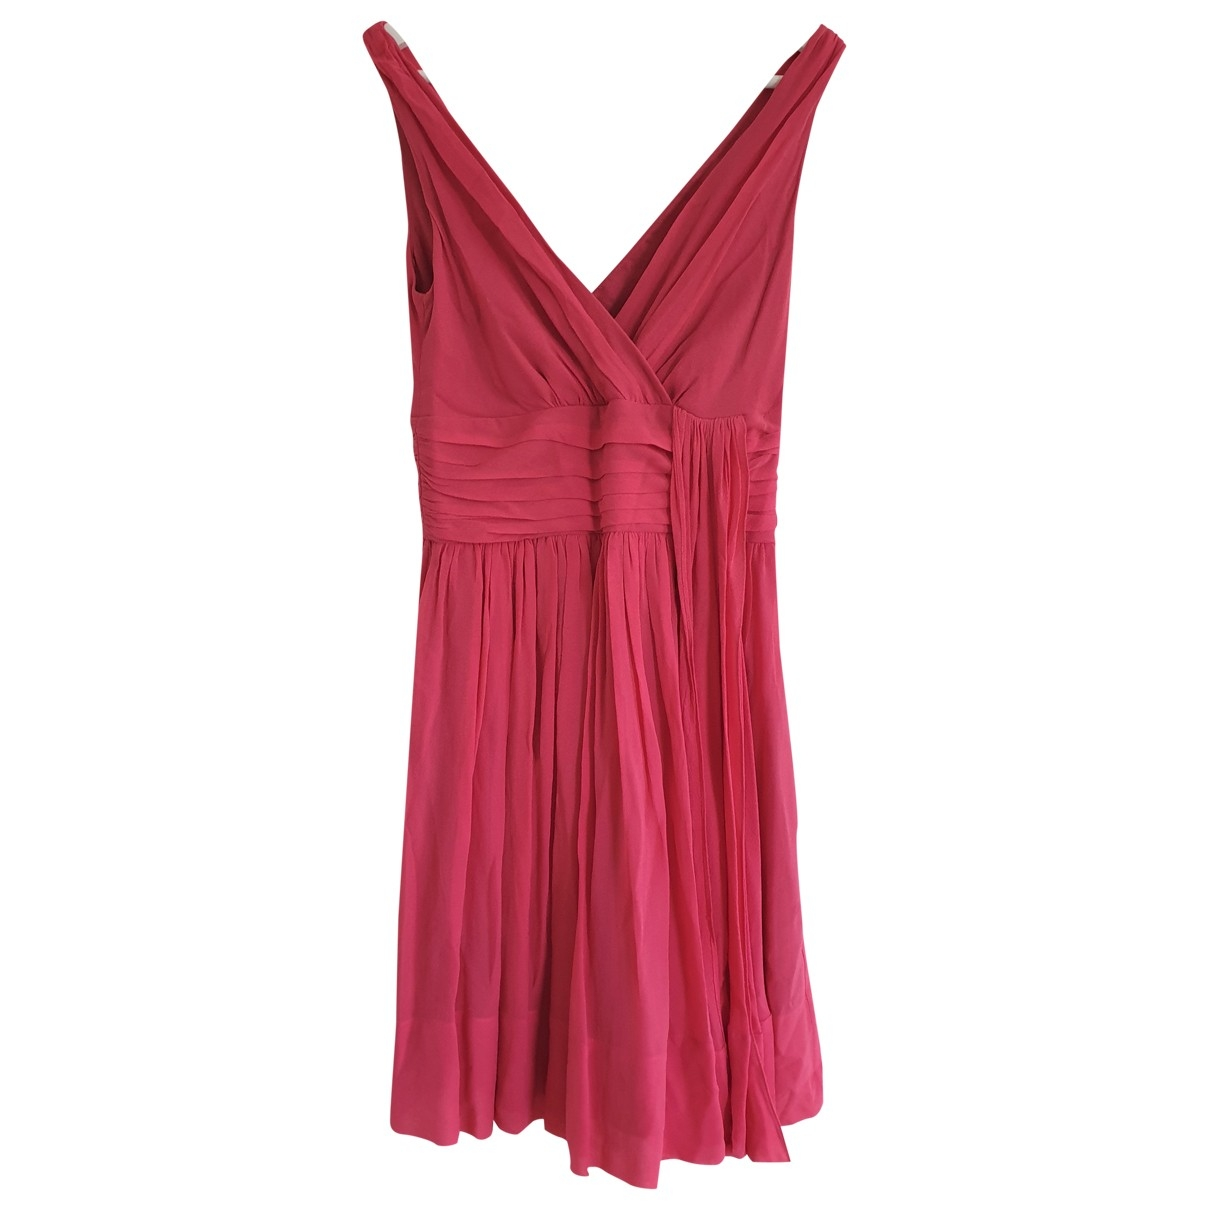 Temperley London \N Pink Silk dress for Women 8 UK